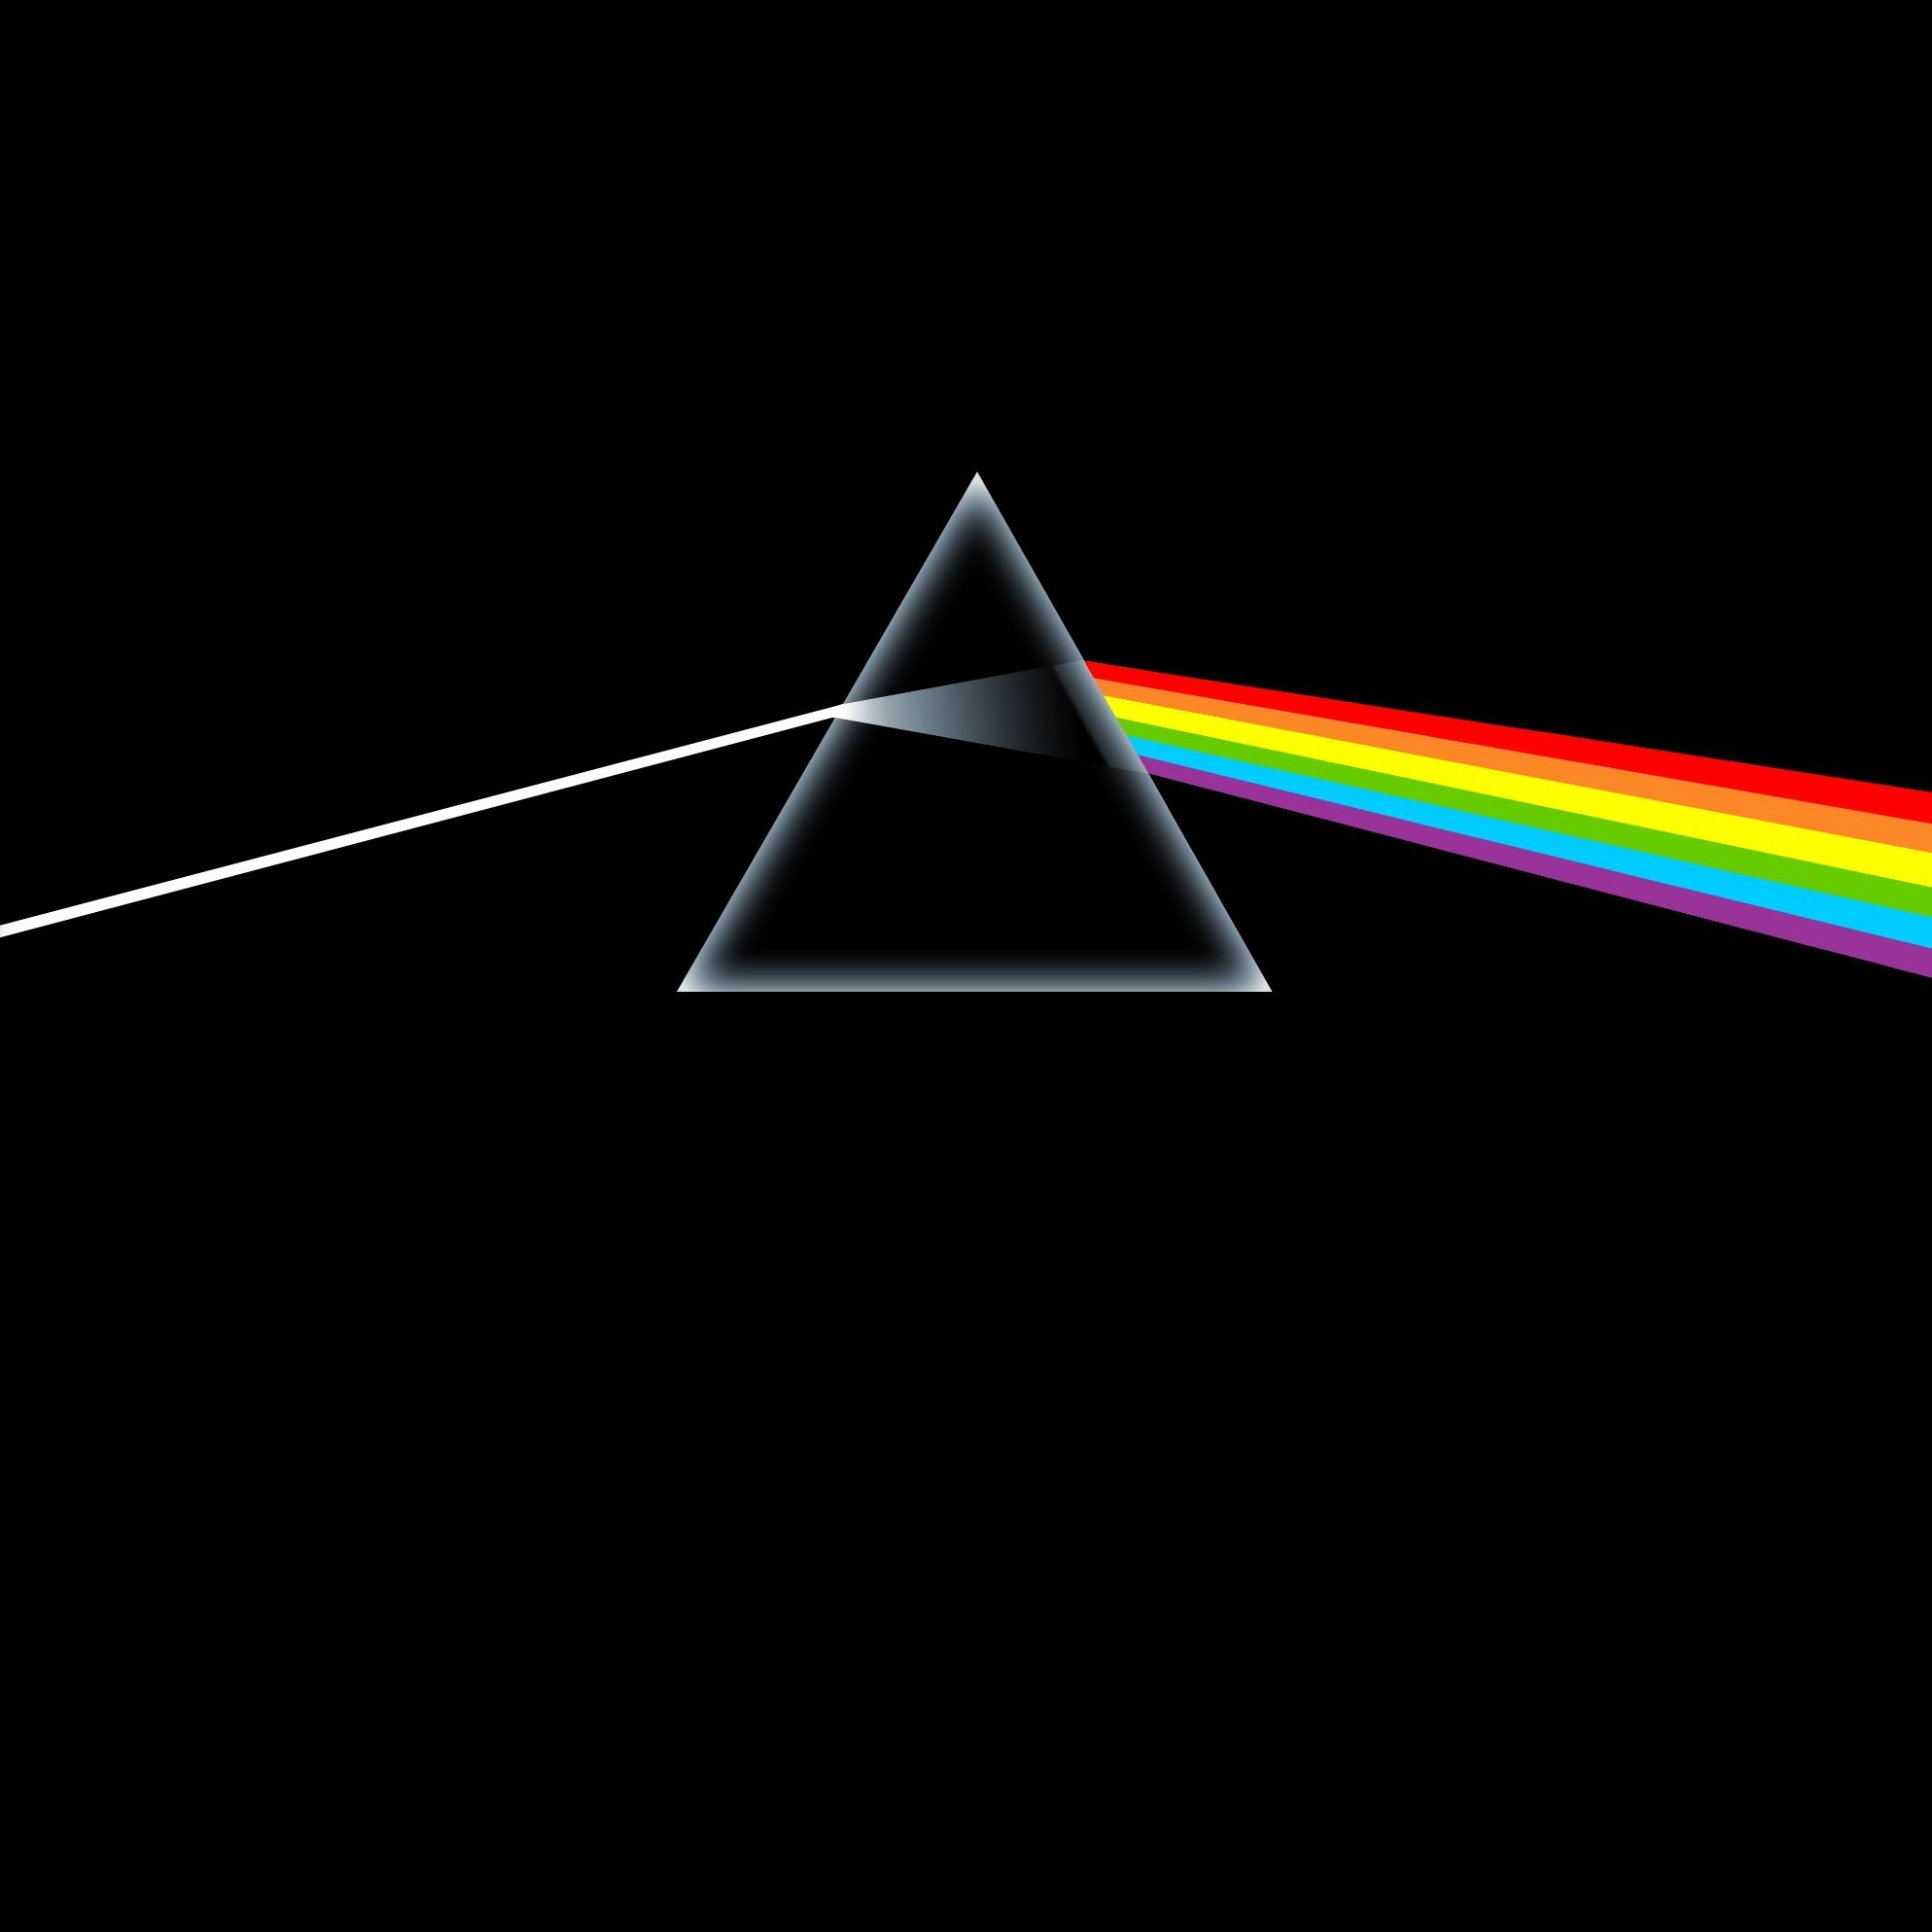 dark side of the moon music wallpaper - hd wallpapers (high